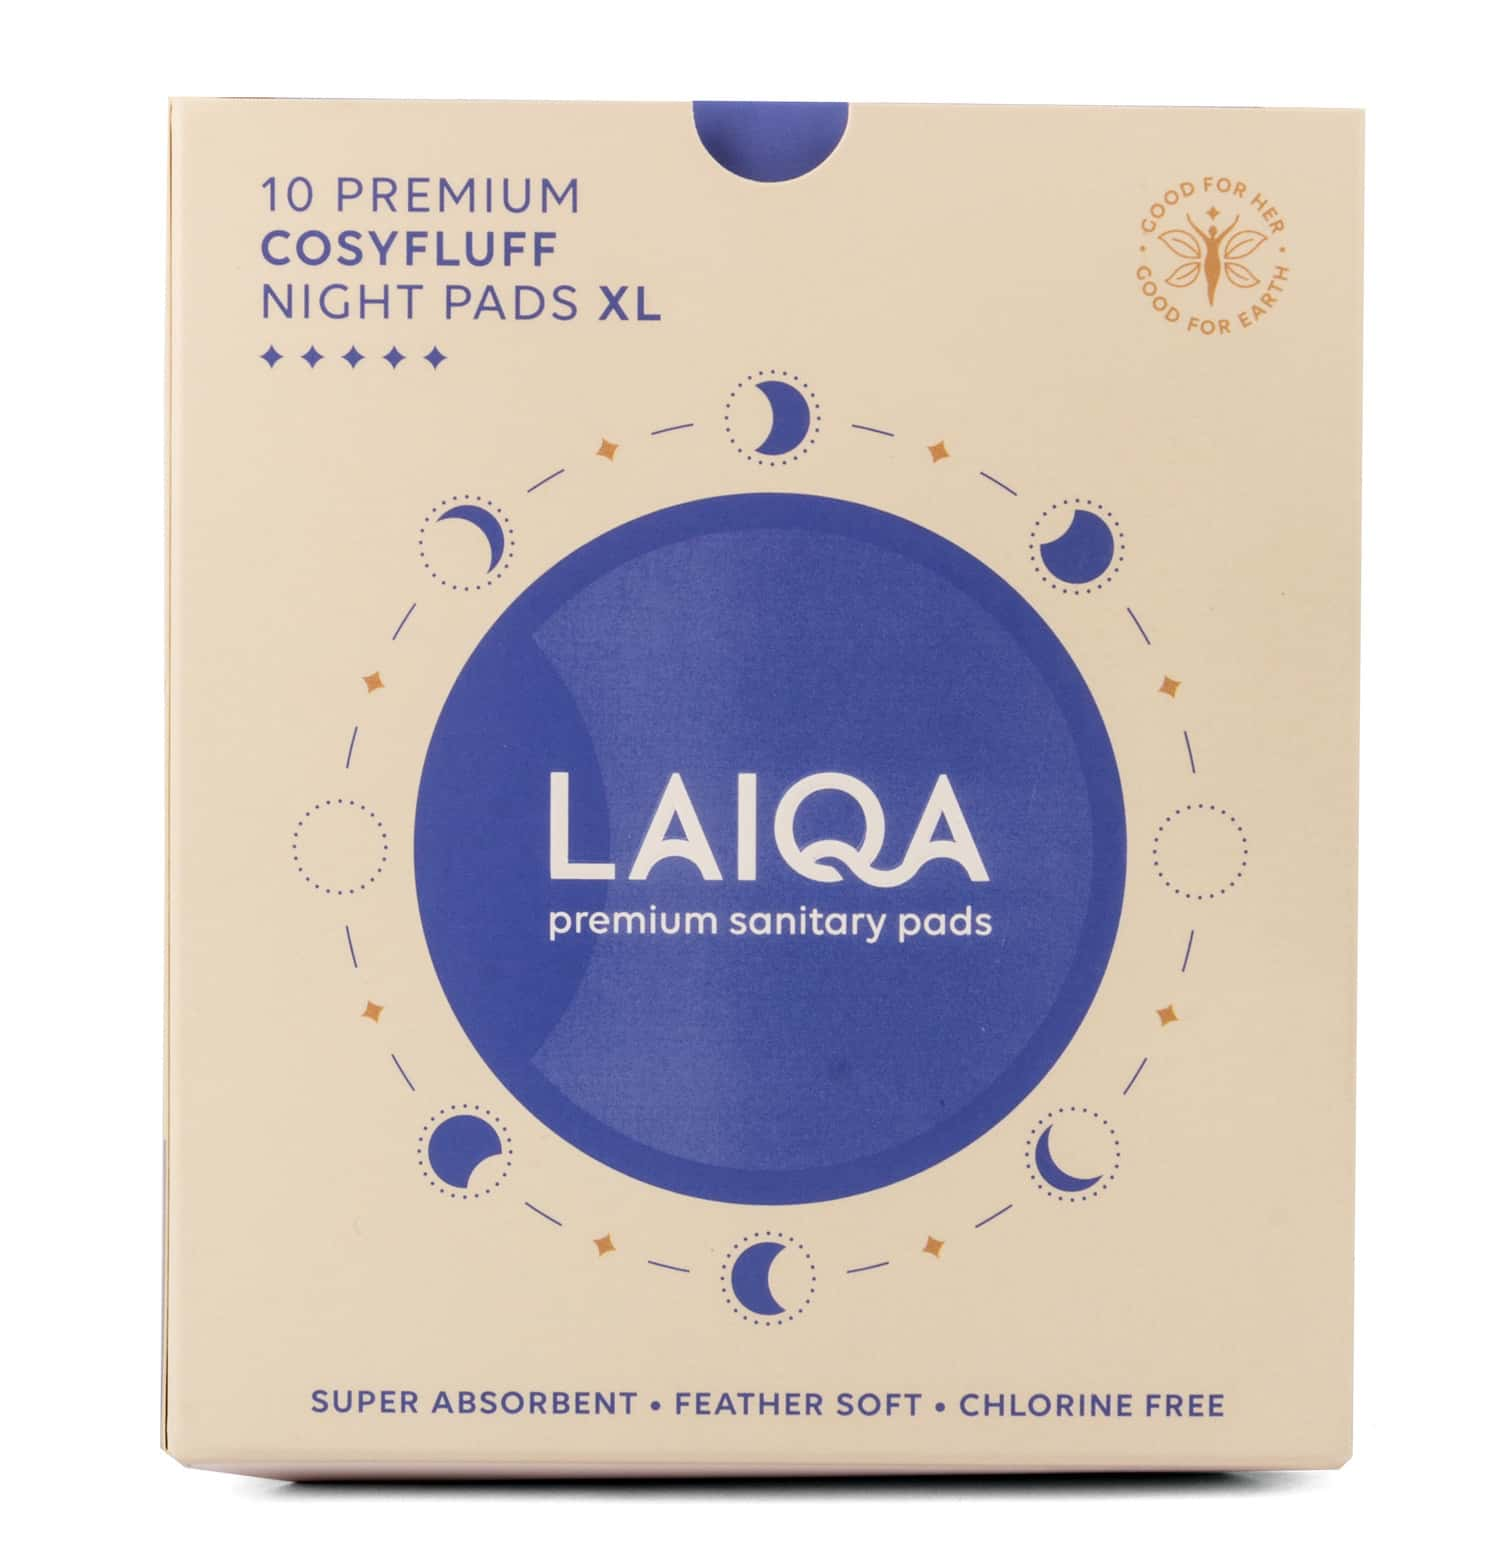 Laiqa Premium Sanitary Napkins Cosyfluff Night Pads Xl 10 Pads 315mm